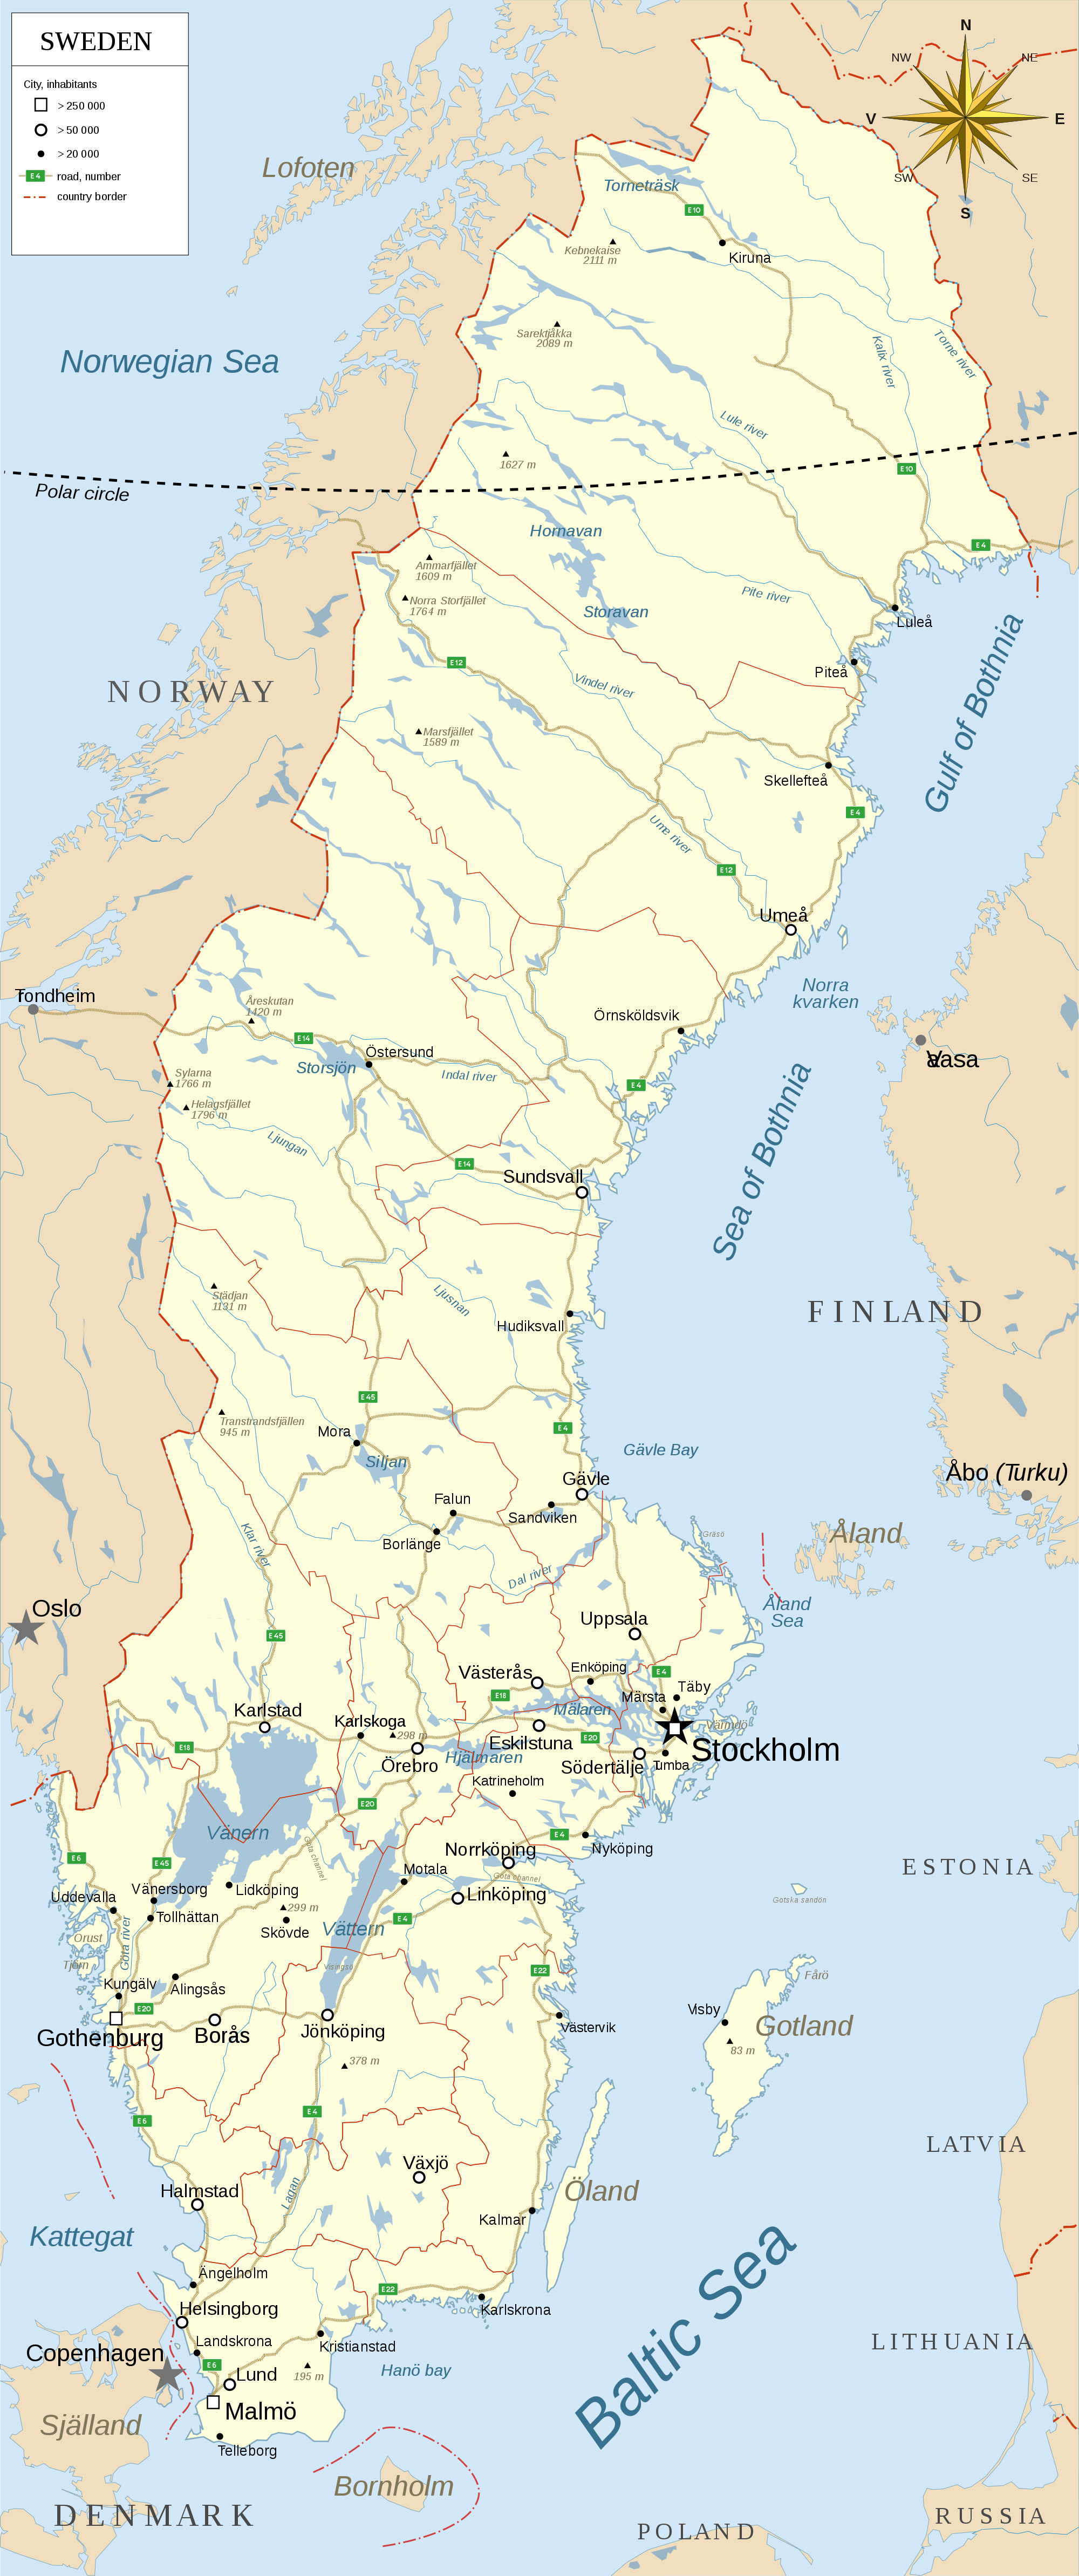 Detailed map of Sweden with administrative divisions roads and